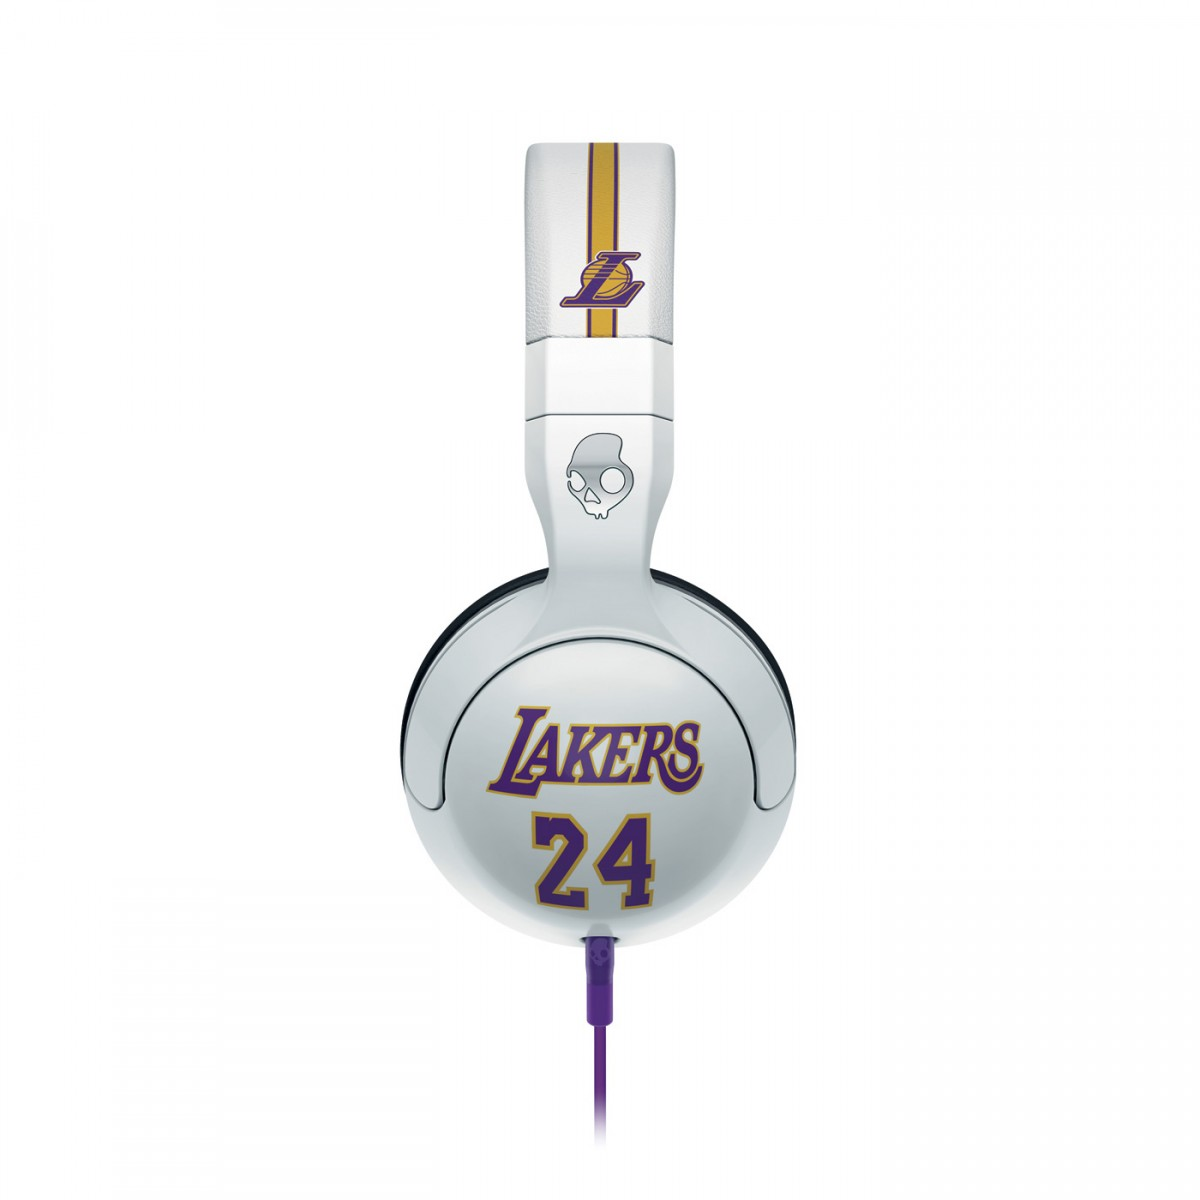 Fone de Ouvido com Microfone Hesh 2 Los Angeles Lakers S6HSDY-226 - Skullcandy